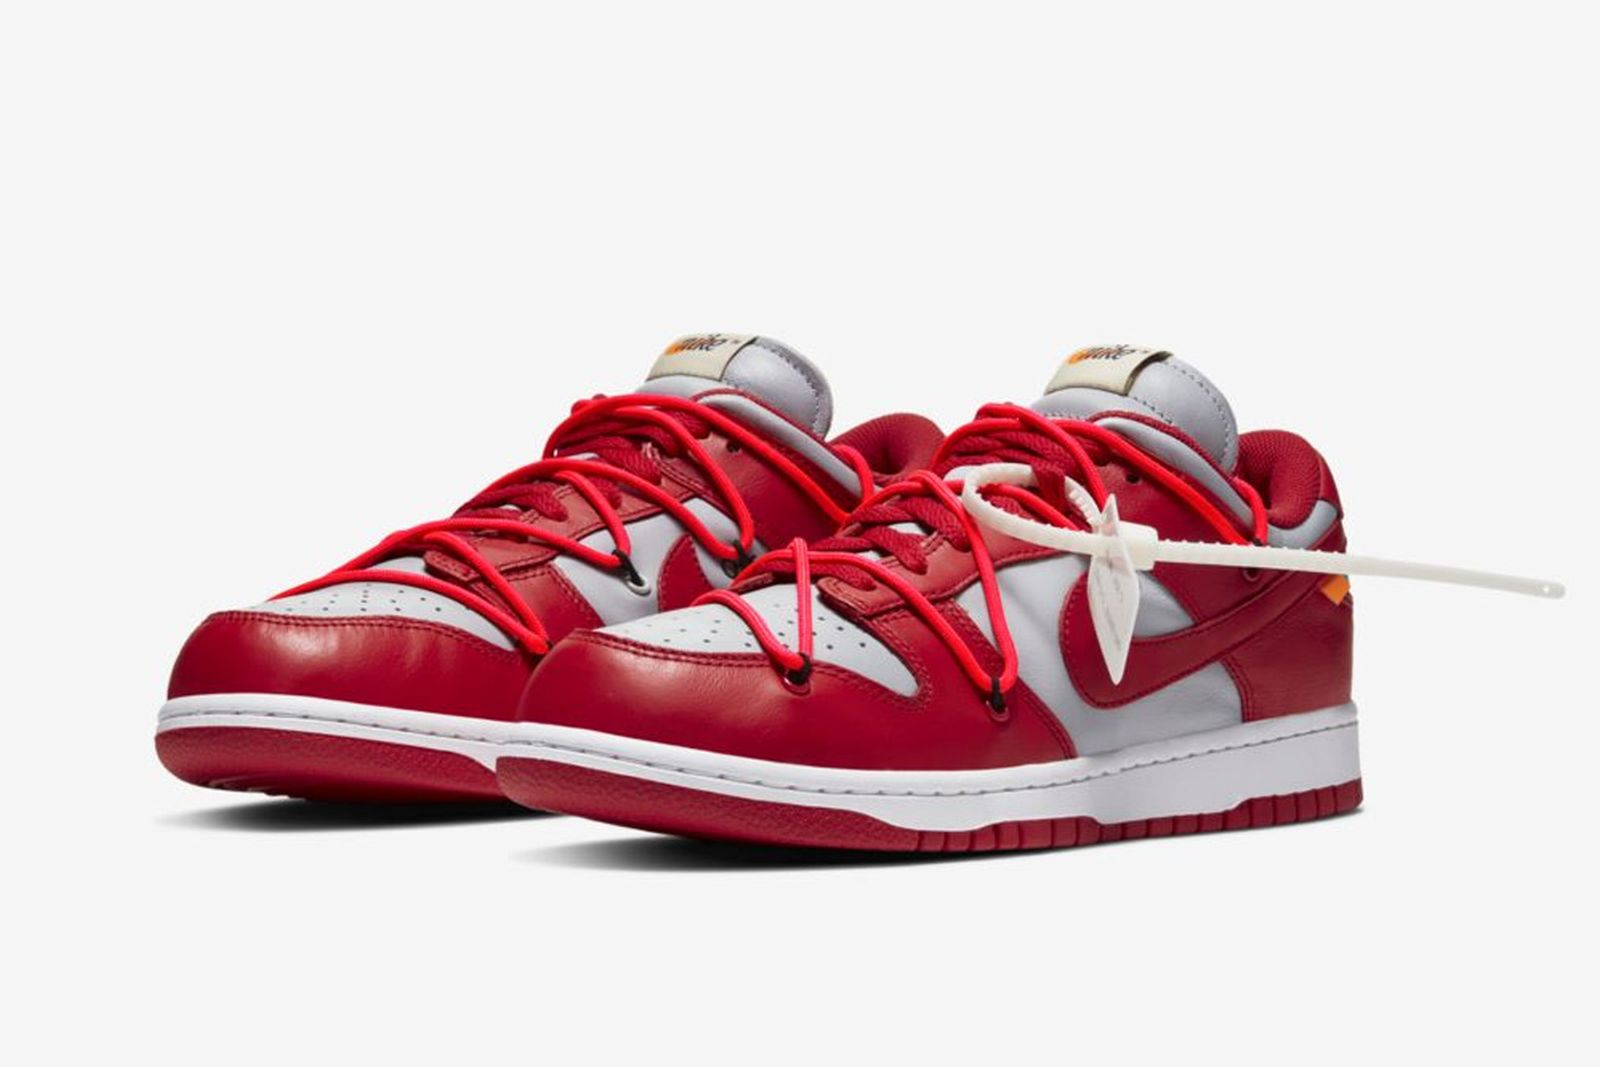 off-white-nike-dunk-low-pack-release-date-price-10